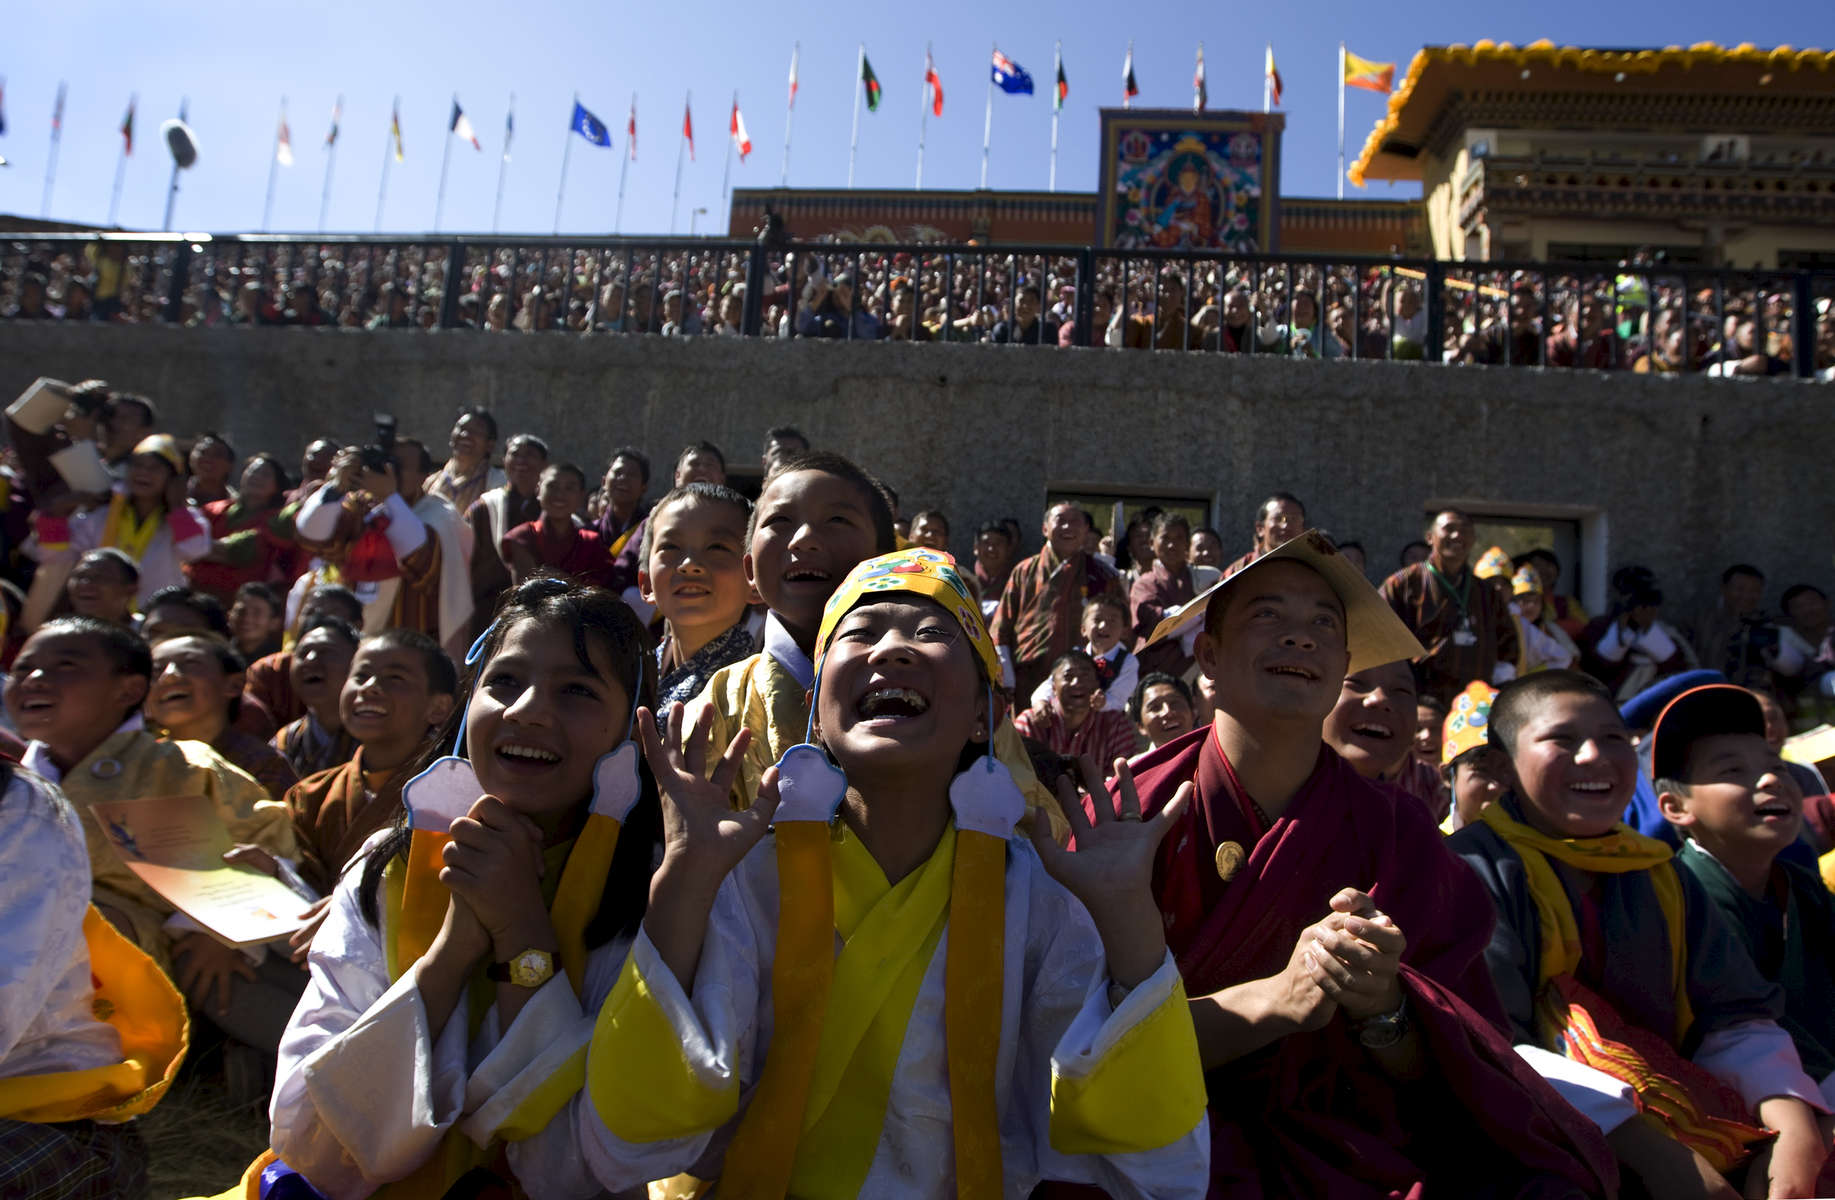 THIMPHU, BHUTAN -NOV 8, 2008: Bhutanese laugh during a game of pillow fighting during the Coronation celebration at the Chang-Lime-Thang stadium November 8, 2008 in Thimphu, Bhutan. His Majesty Jigme Khesar Namgyel Wangchuck, 28, the young Bhutanese king, an Oxford-educated bachelor became the youngest reigning monarch on the planet when he was crowned on November 6th. The tiny Himalayan kingdom, a Buddhist nation of 635,000 people is wedged between China and India.  (Photo by Paula Bronstein/Getty Images)